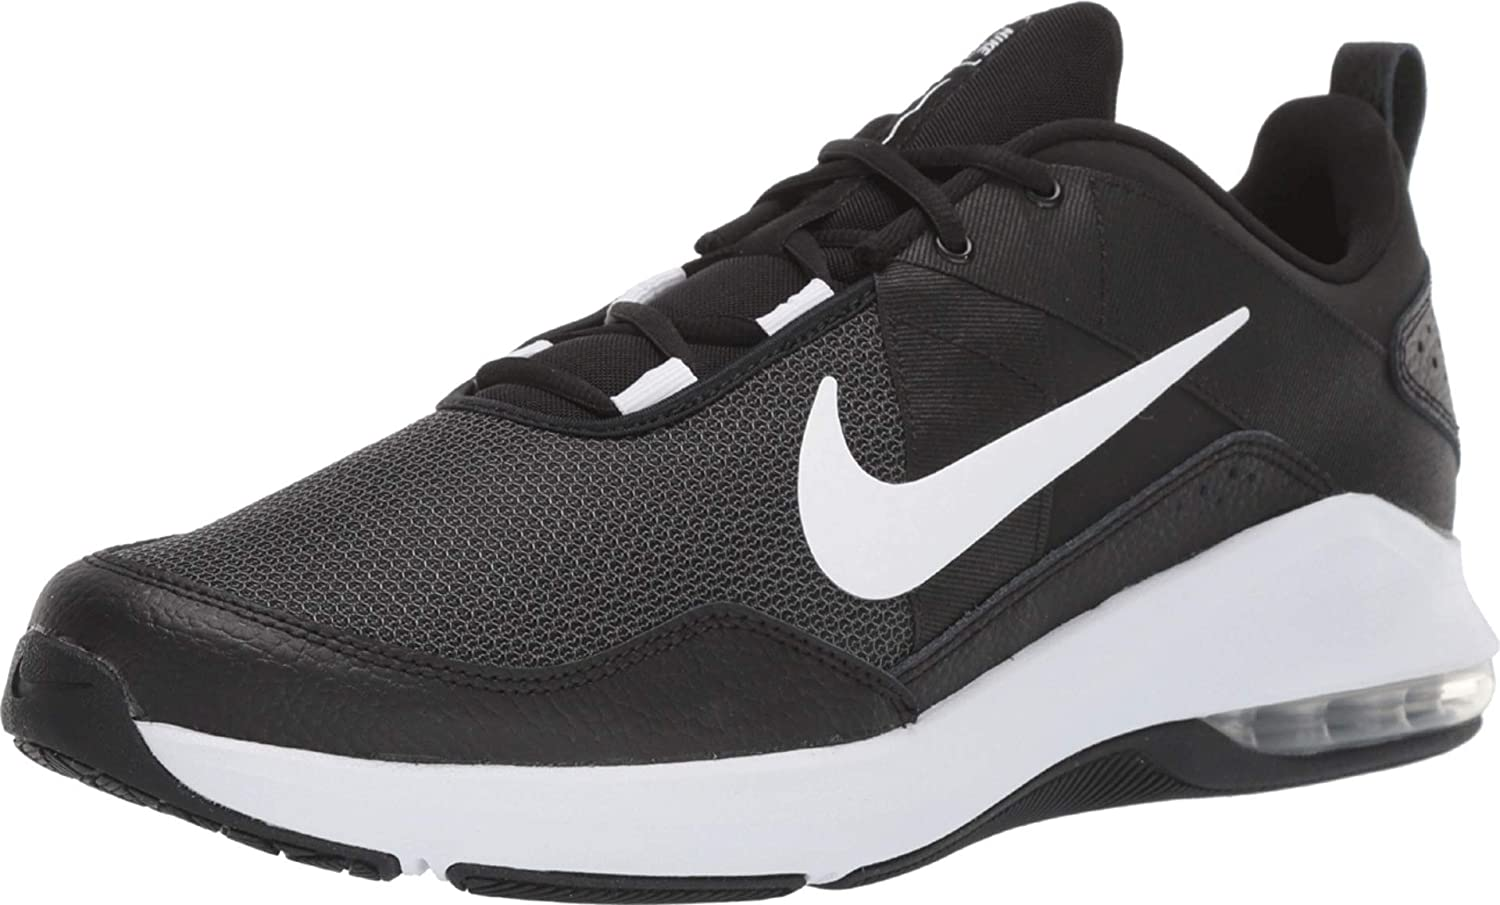 Nike Men's Fitness Field Shoes High Max 81% OFF quality new Track